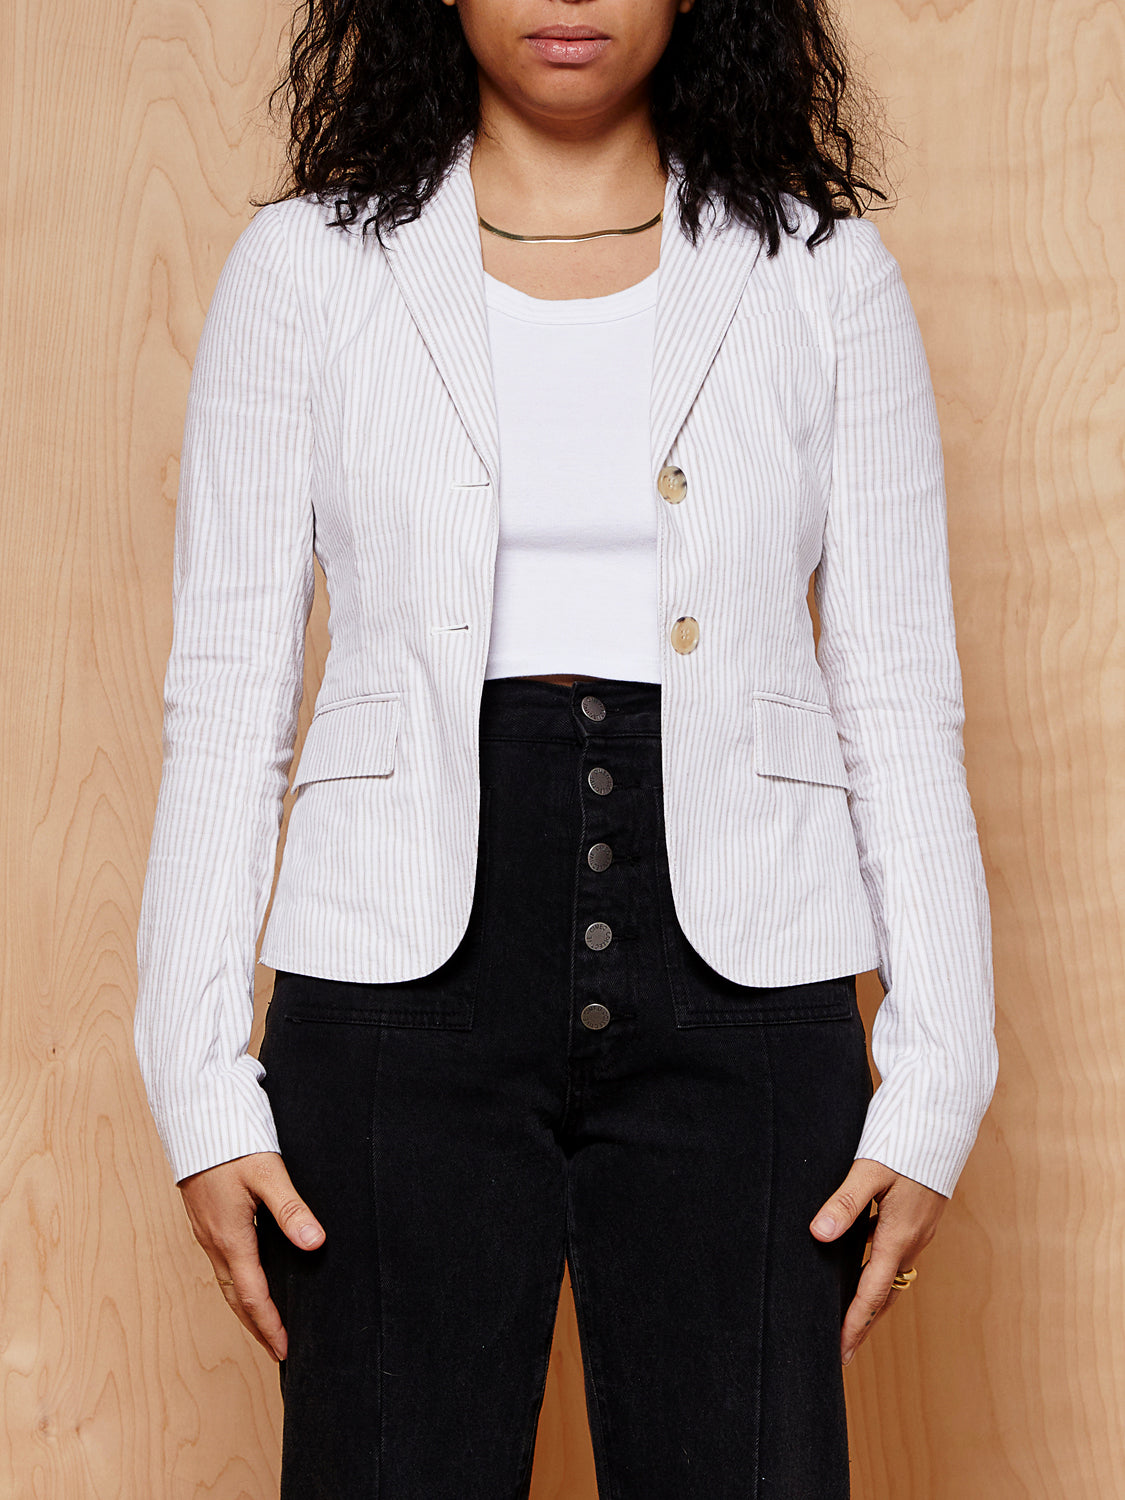 Theory Beige Striped Blazer